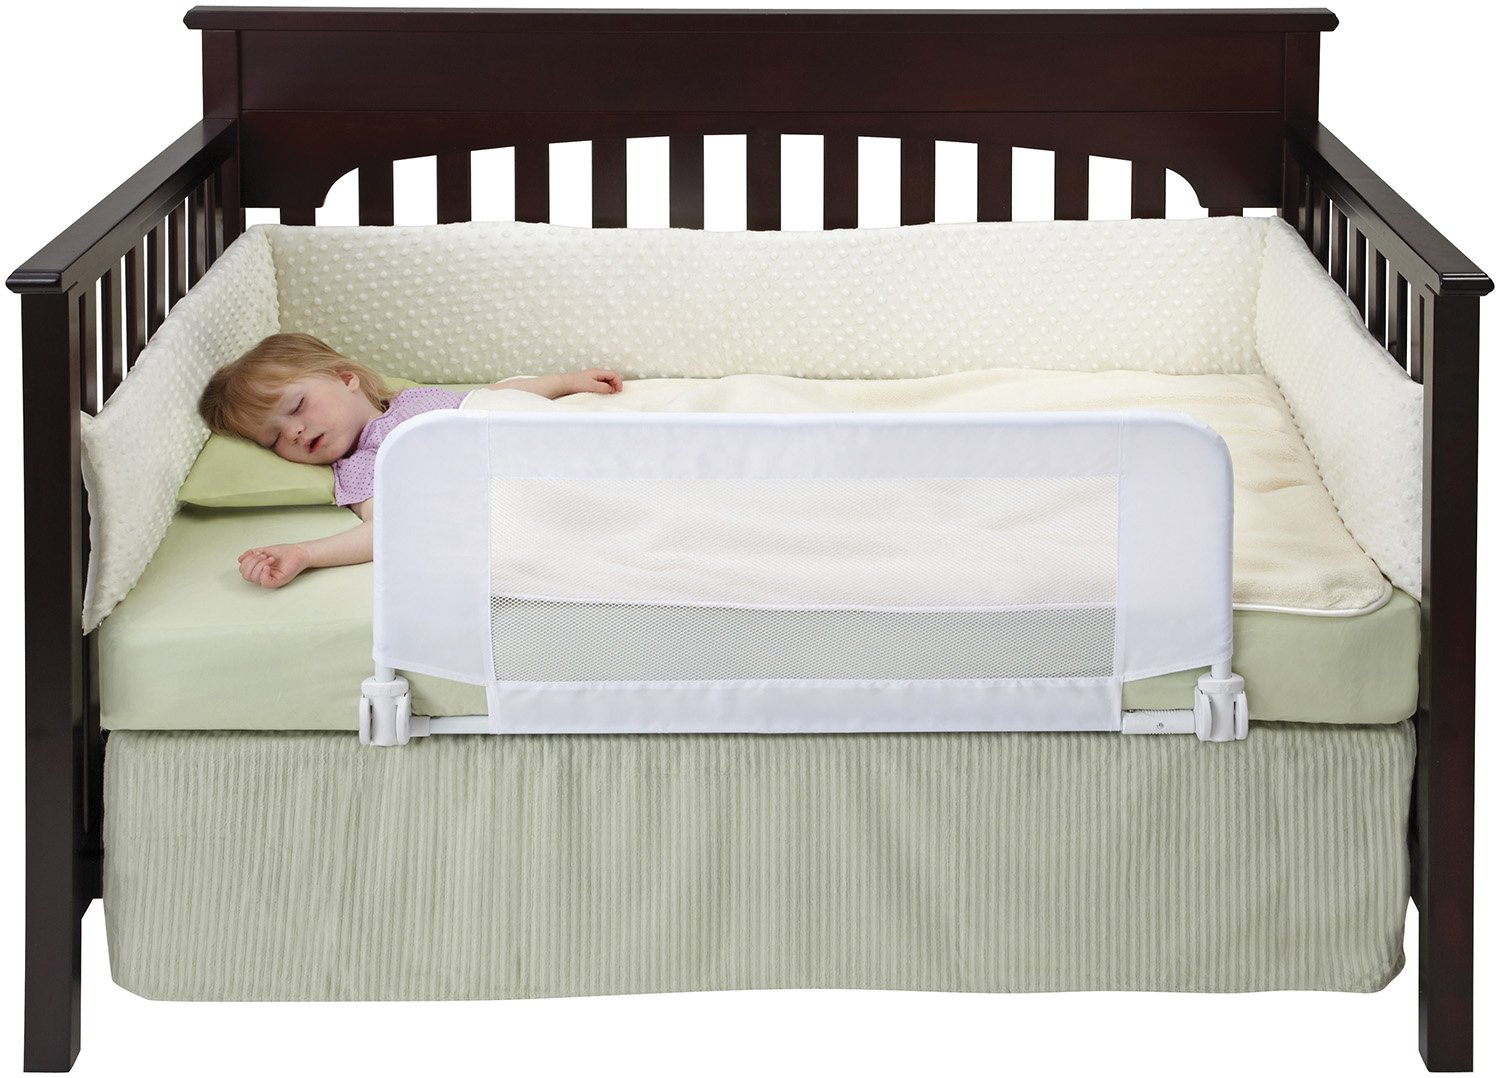 Baby crib youth bed -  Kids Furniture Babyu0026 39 Crib To Bed Furniture Buy Dexbaby Safe Sleeper Convertible Crib Bed Rail White Online At